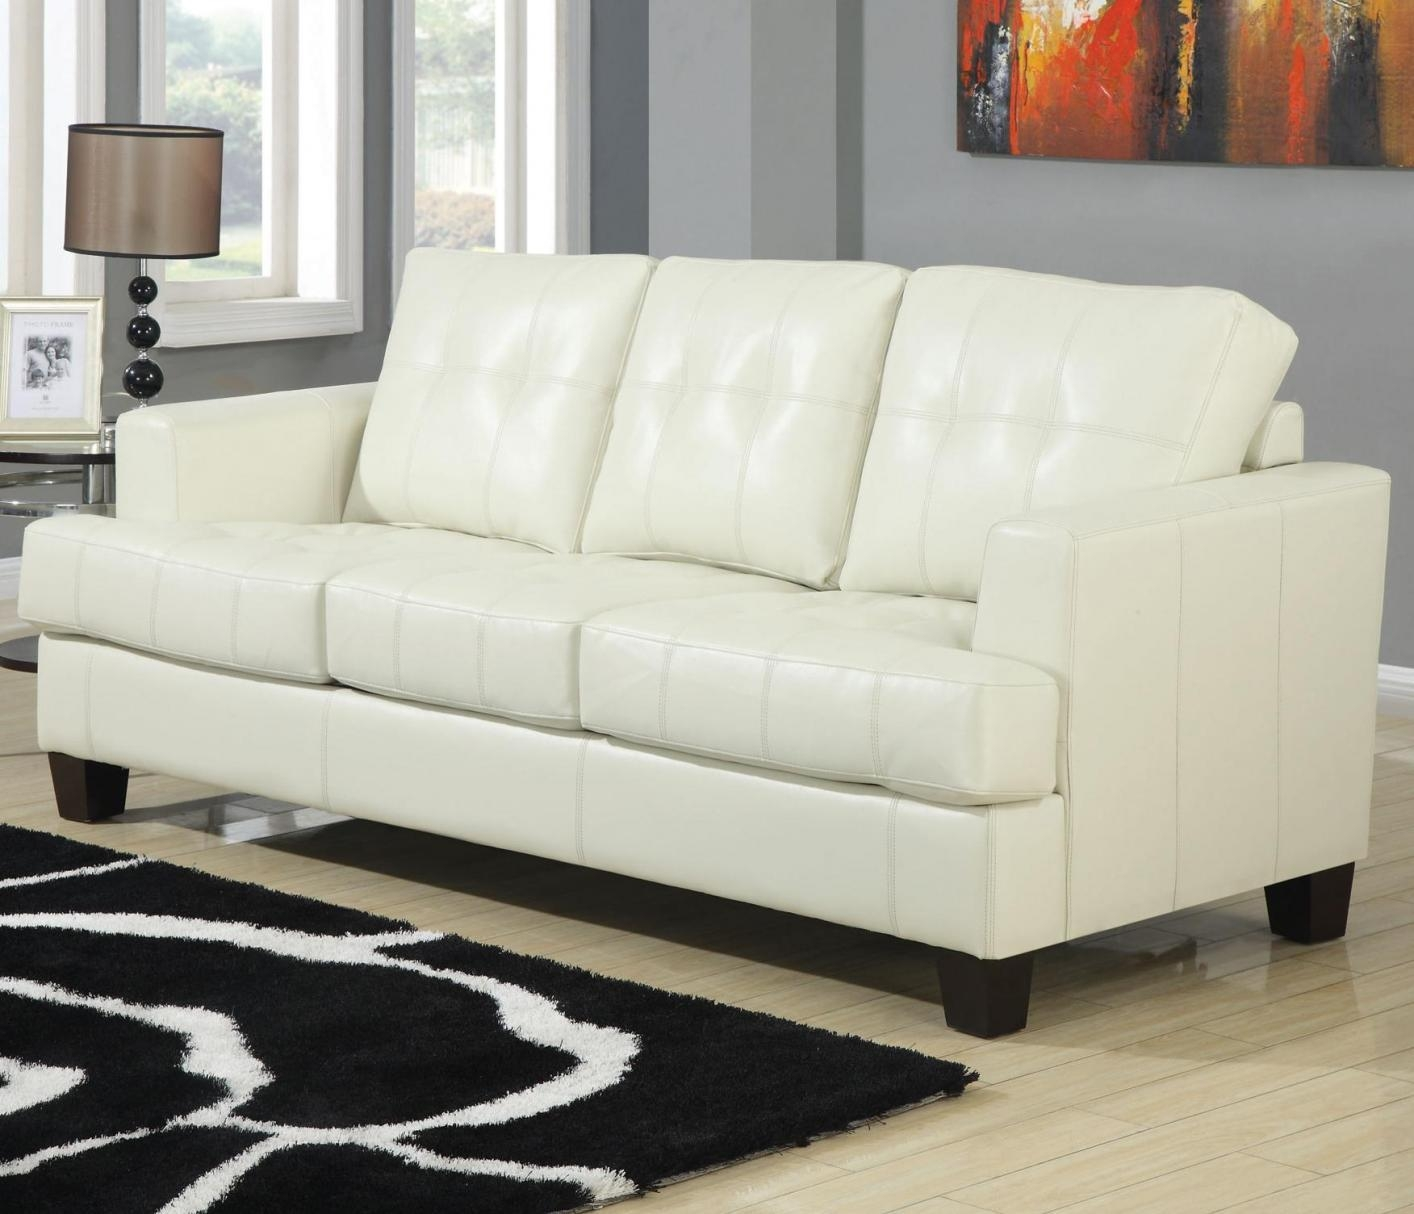 Samuel Beige Leather Sofa Bed – Steal A Sofa Furniture Outlet Los In Beige Leather Couches (View 2 of 20)